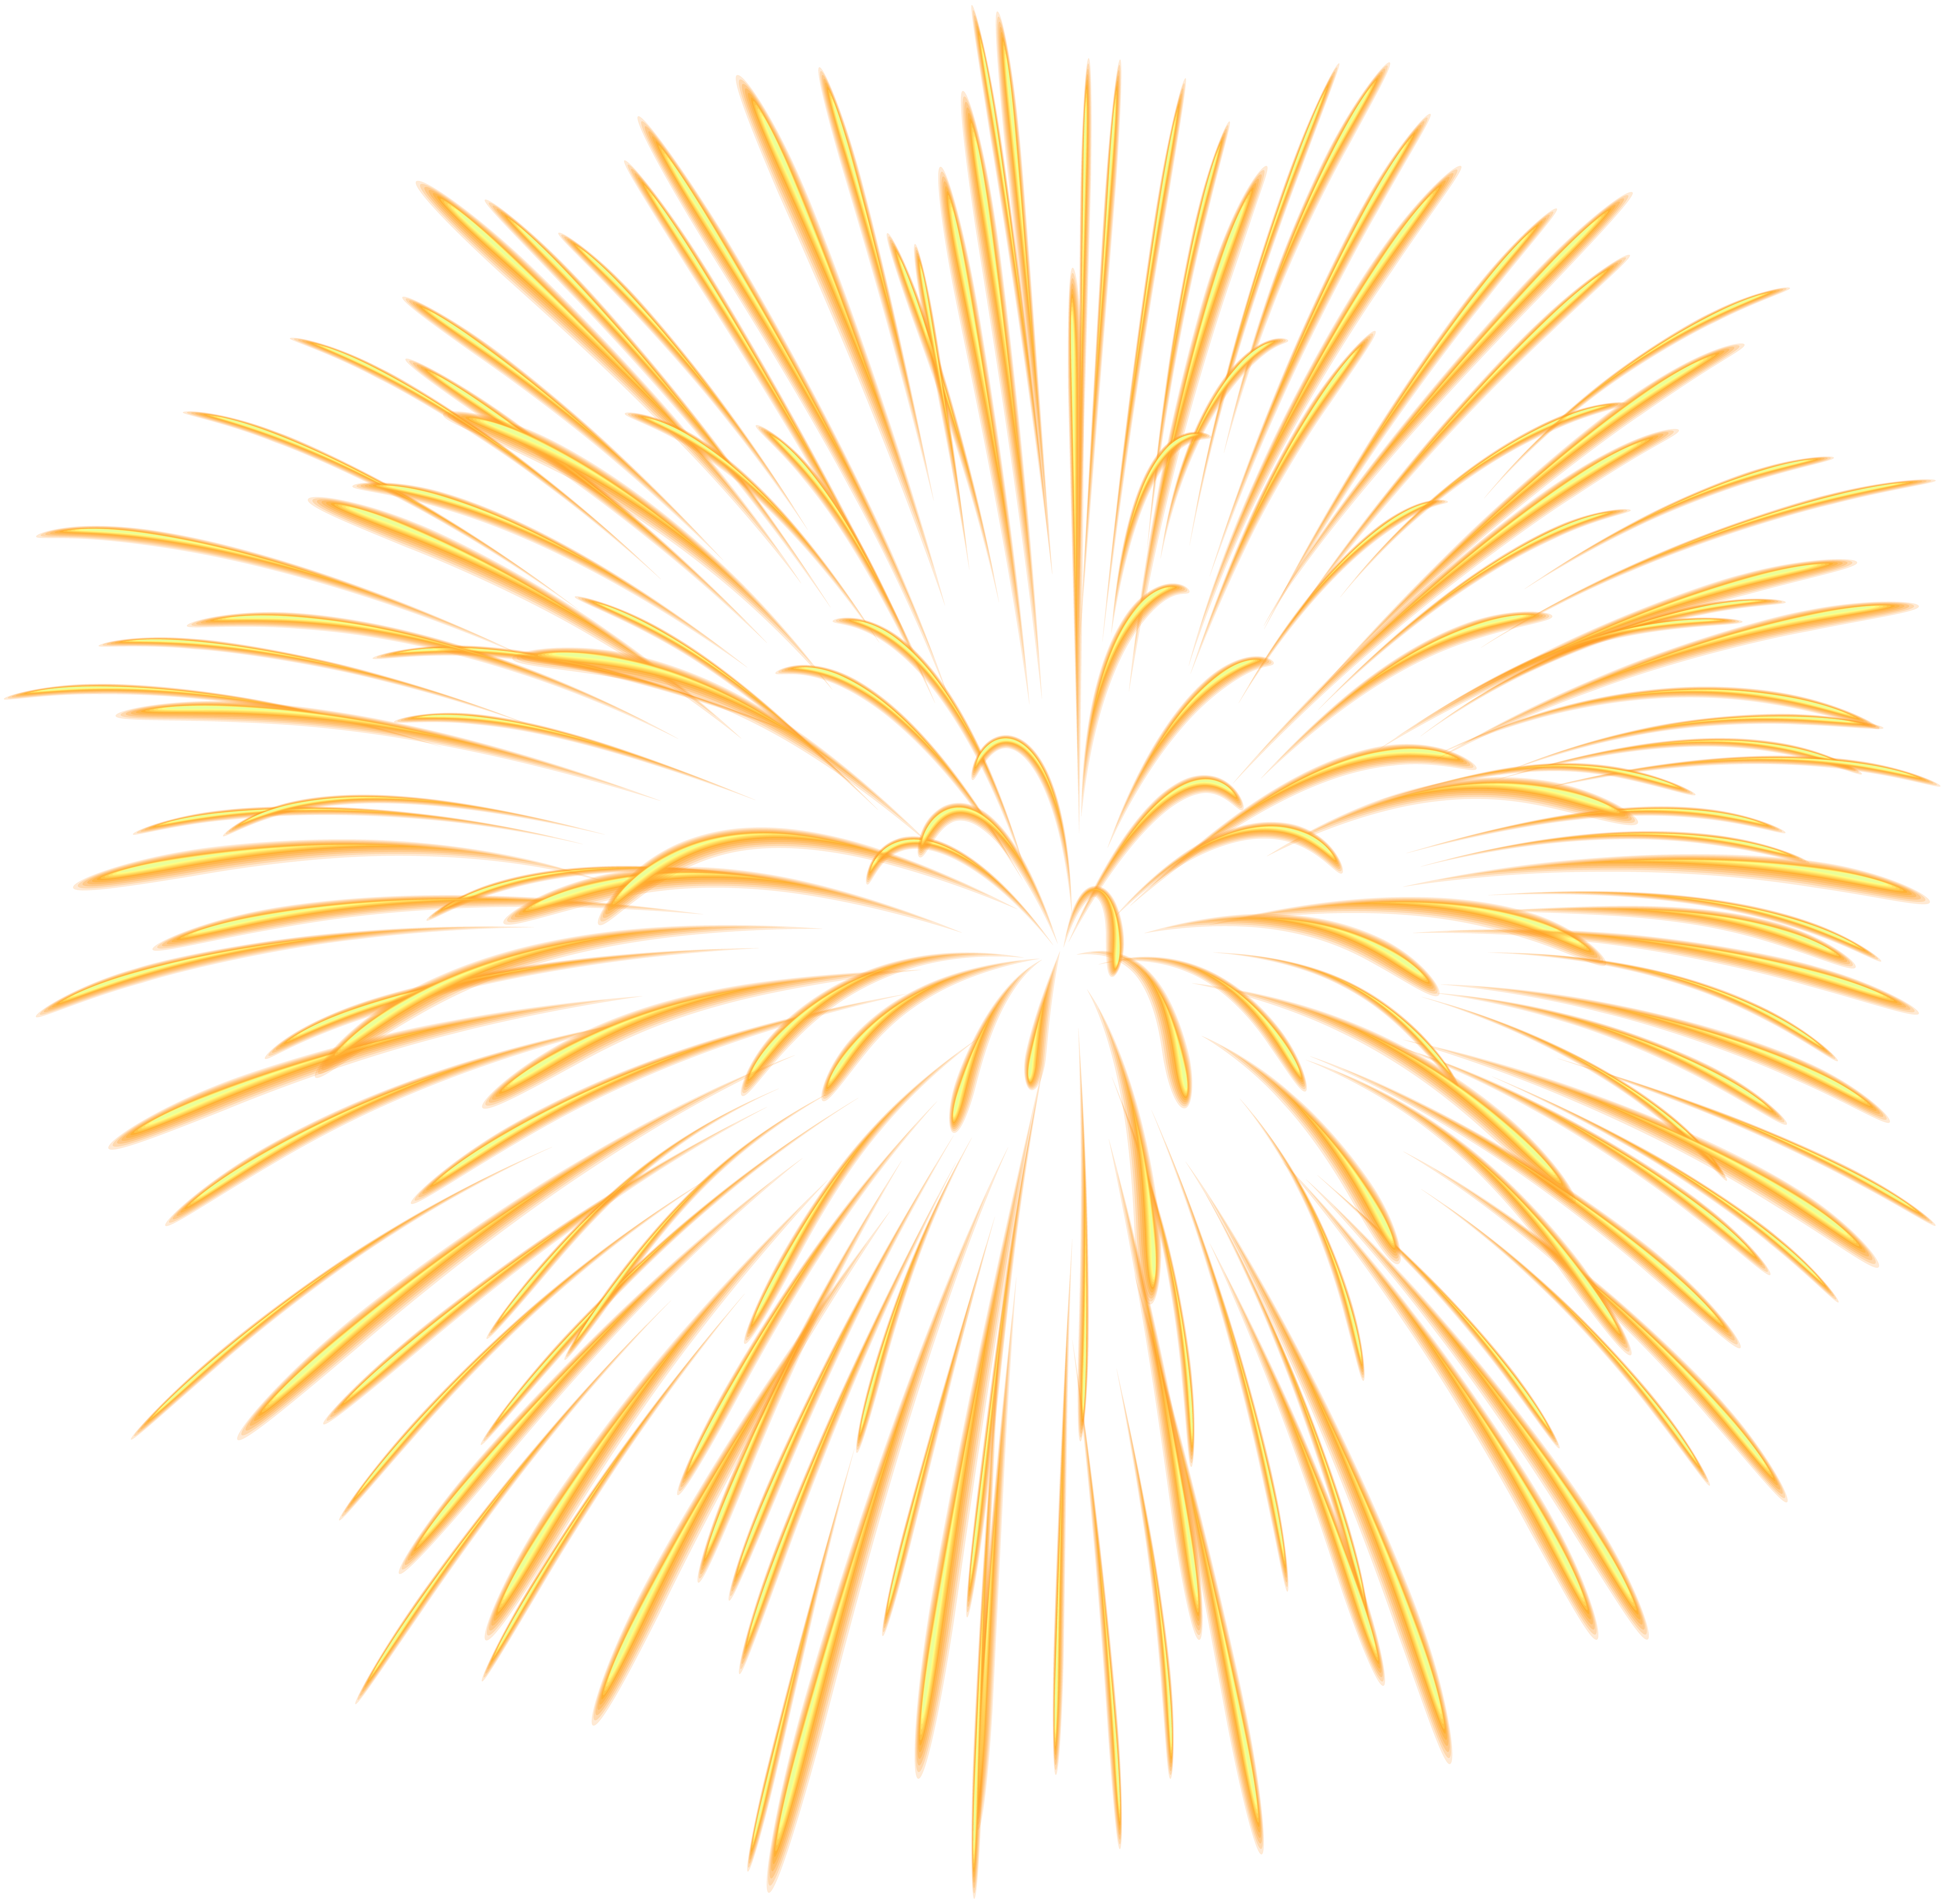 Fireworks PNG Clipart Background, Free Download.